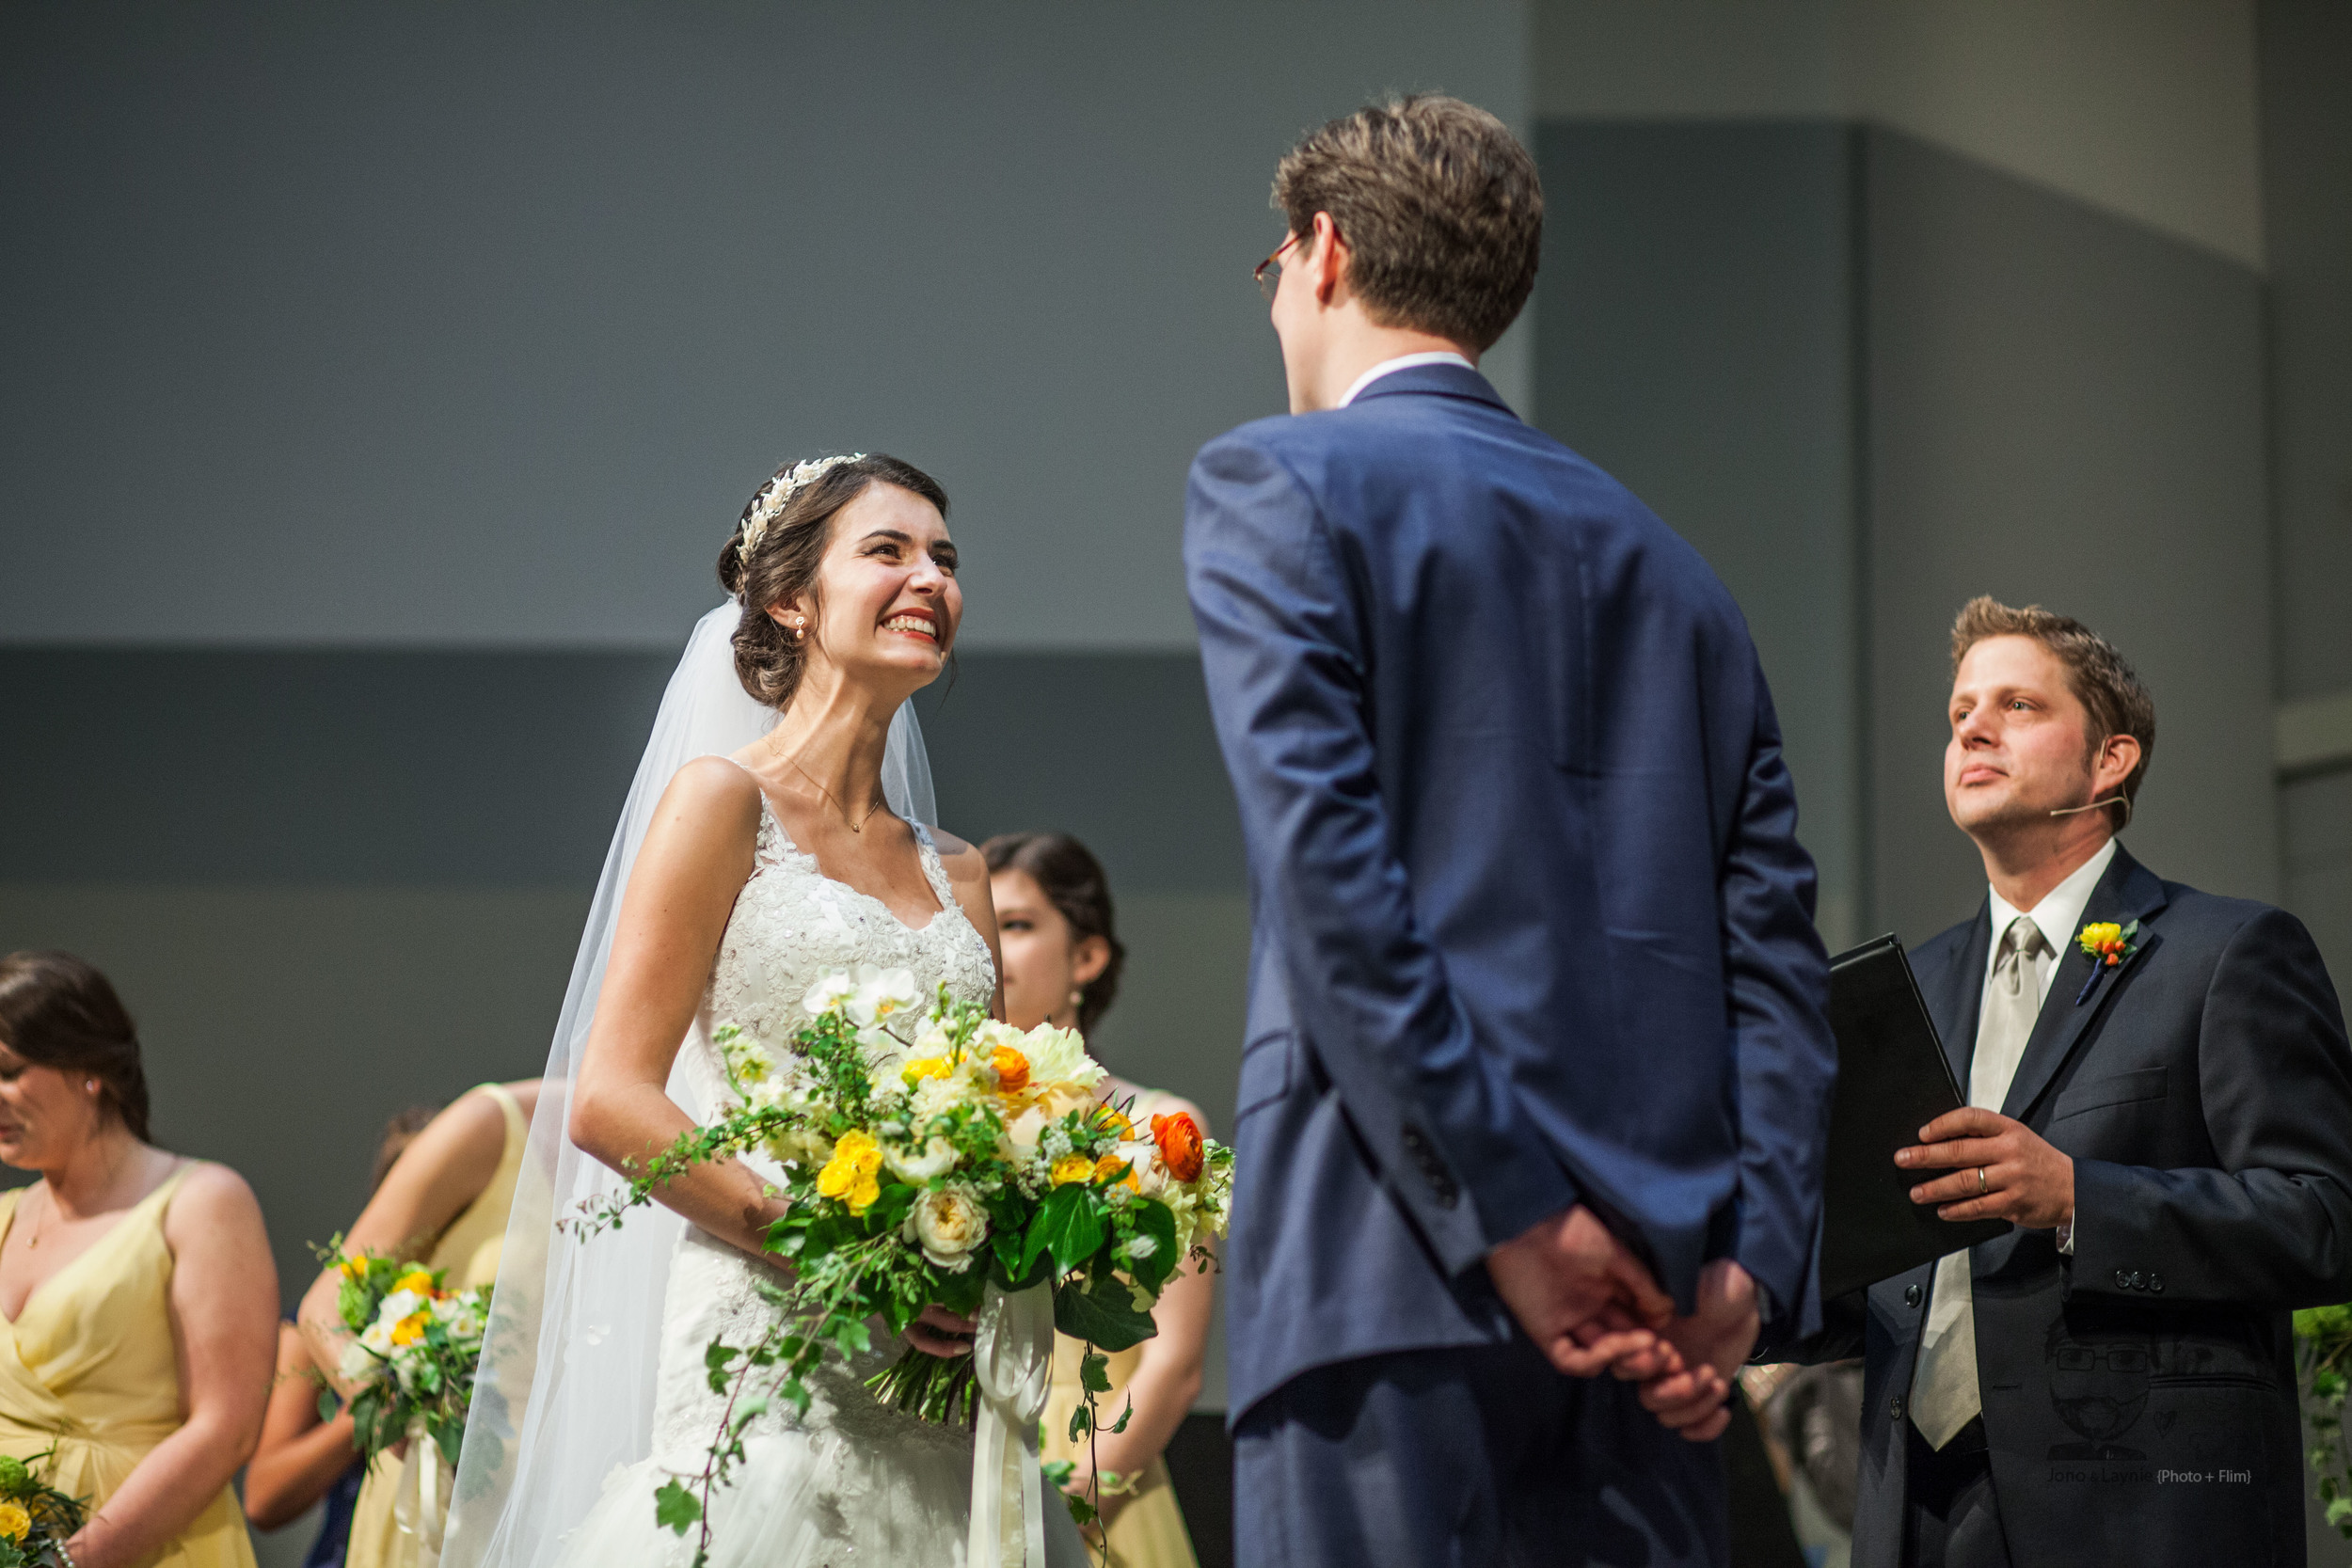 029Toronto Wedding Photographers and Videographers-Jono & Laynie Co.jpg